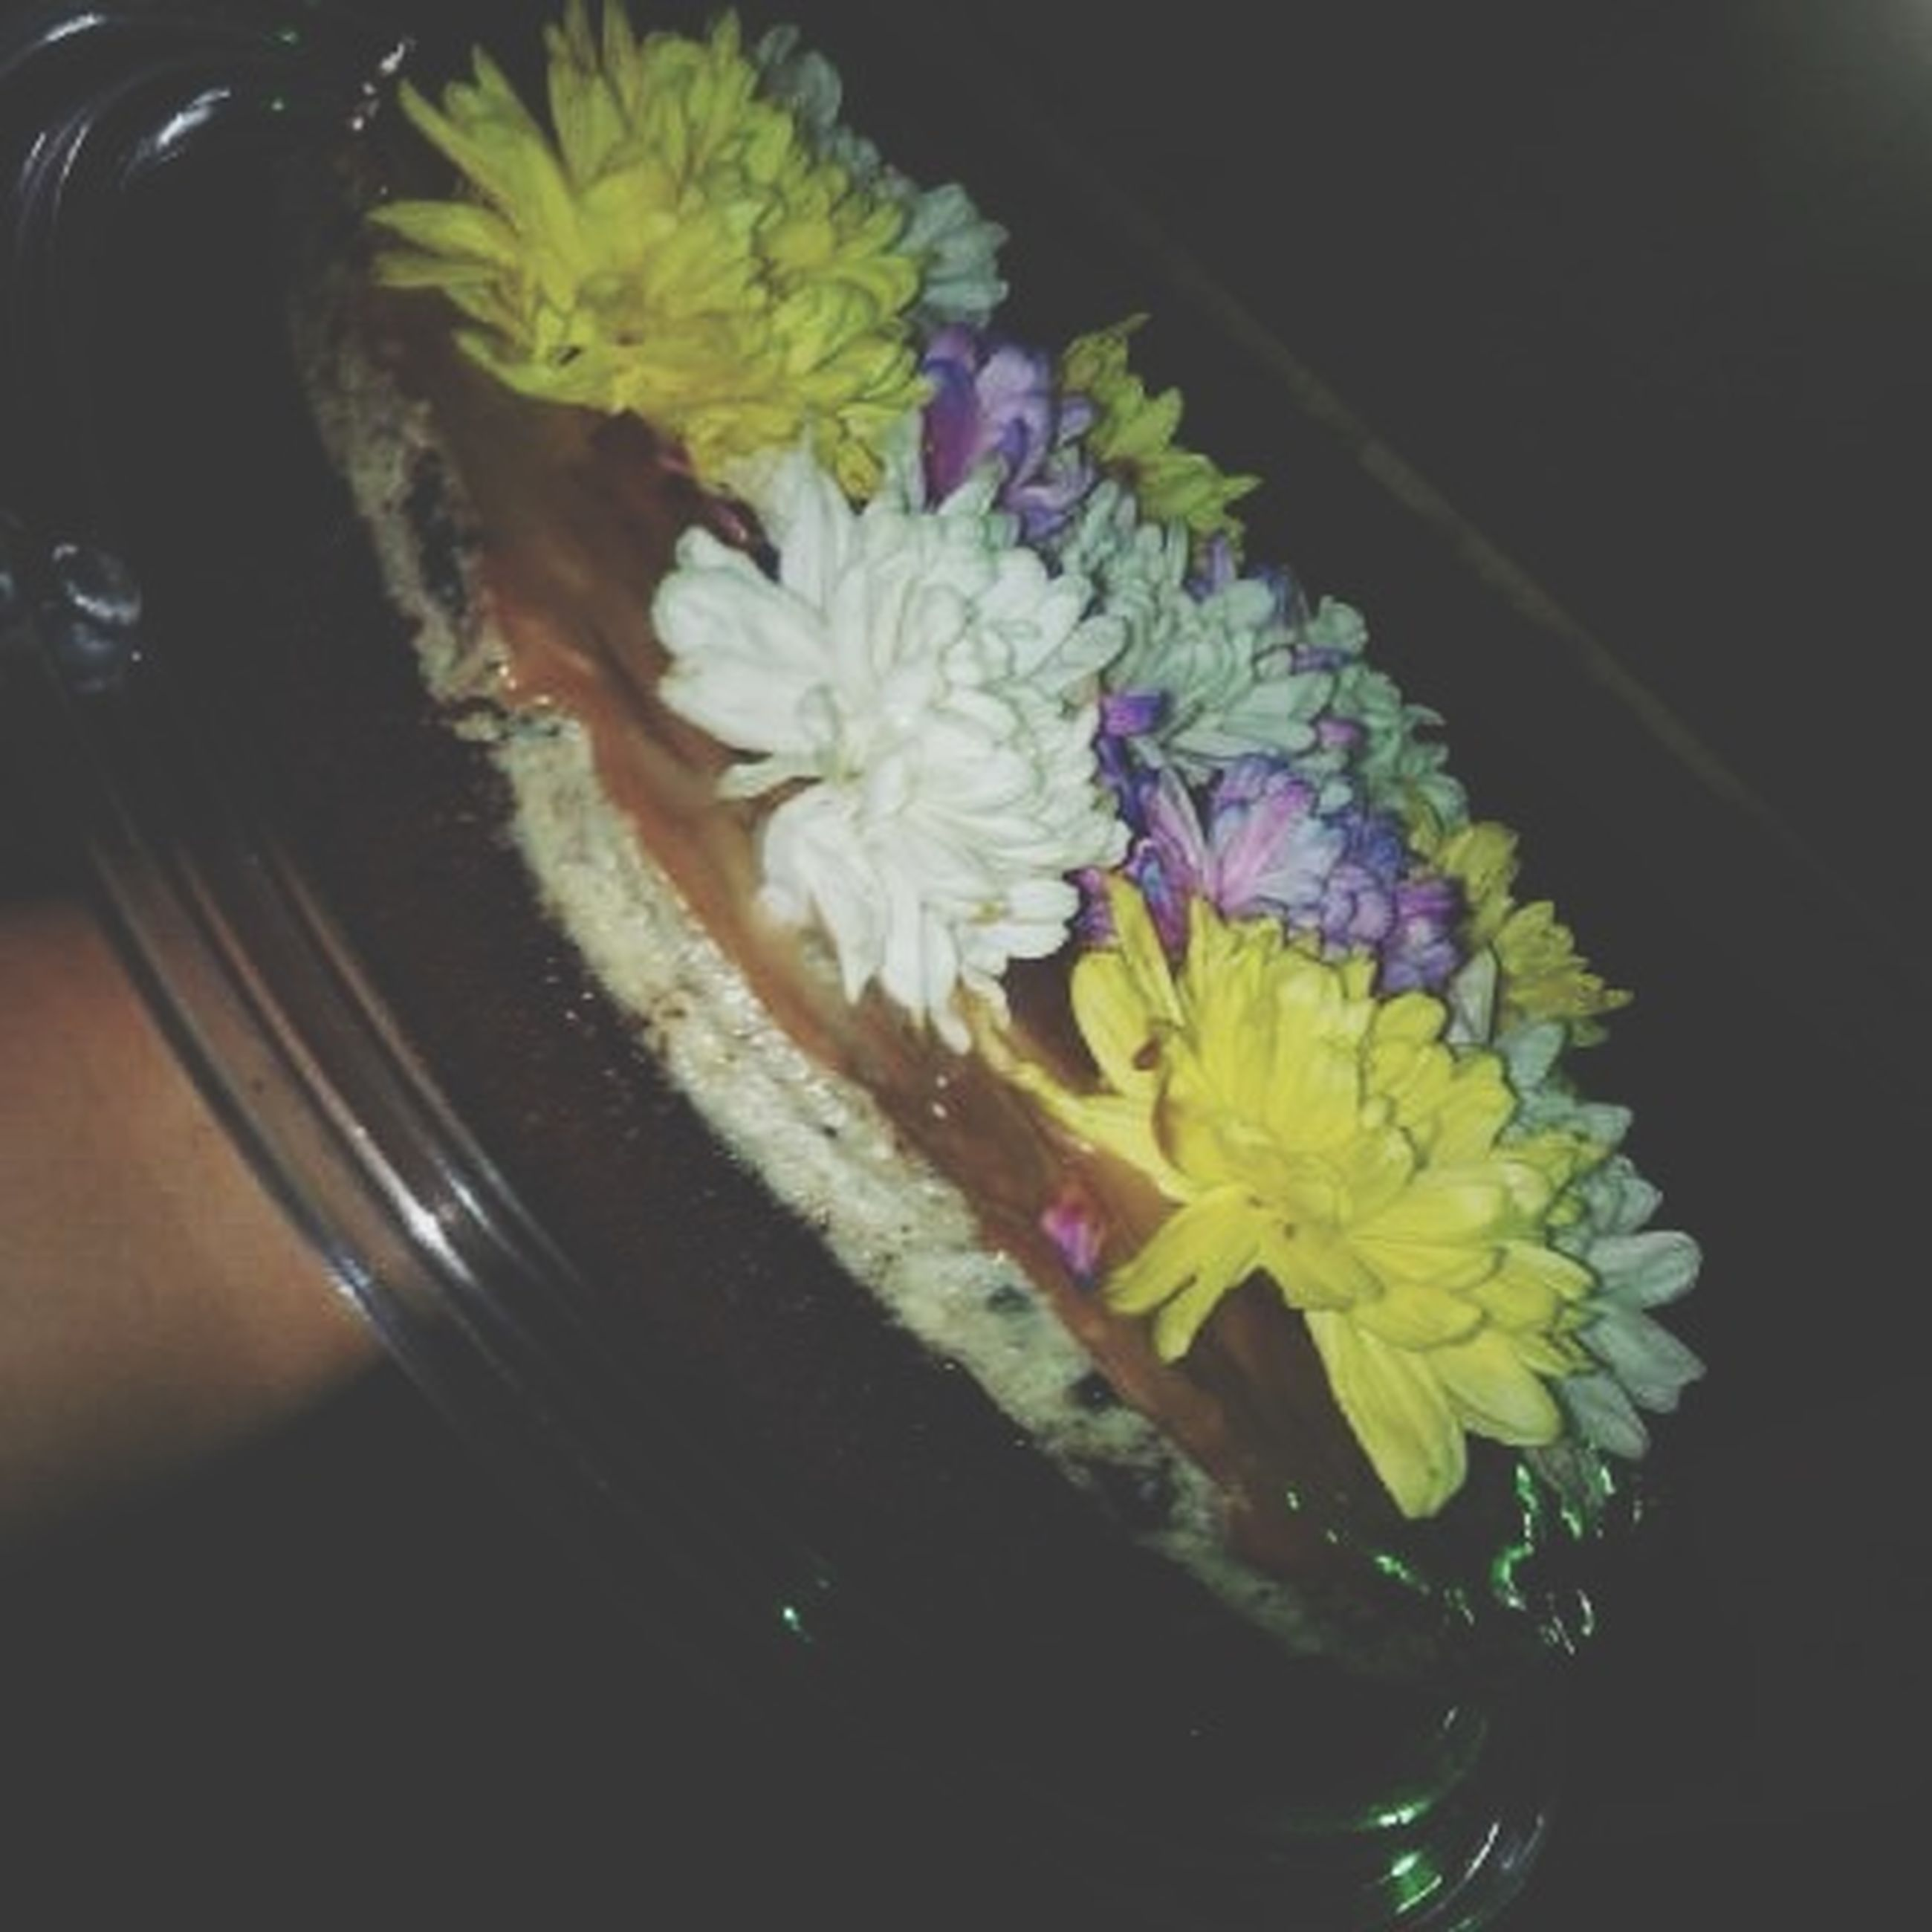 flower, petal, indoors, freshness, fragility, flower head, vase, close-up, yellow, high angle view, beauty in nature, decoration, white color, bouquet, bunch of flowers, flower arrangement, plant, nature, potted plant, no people